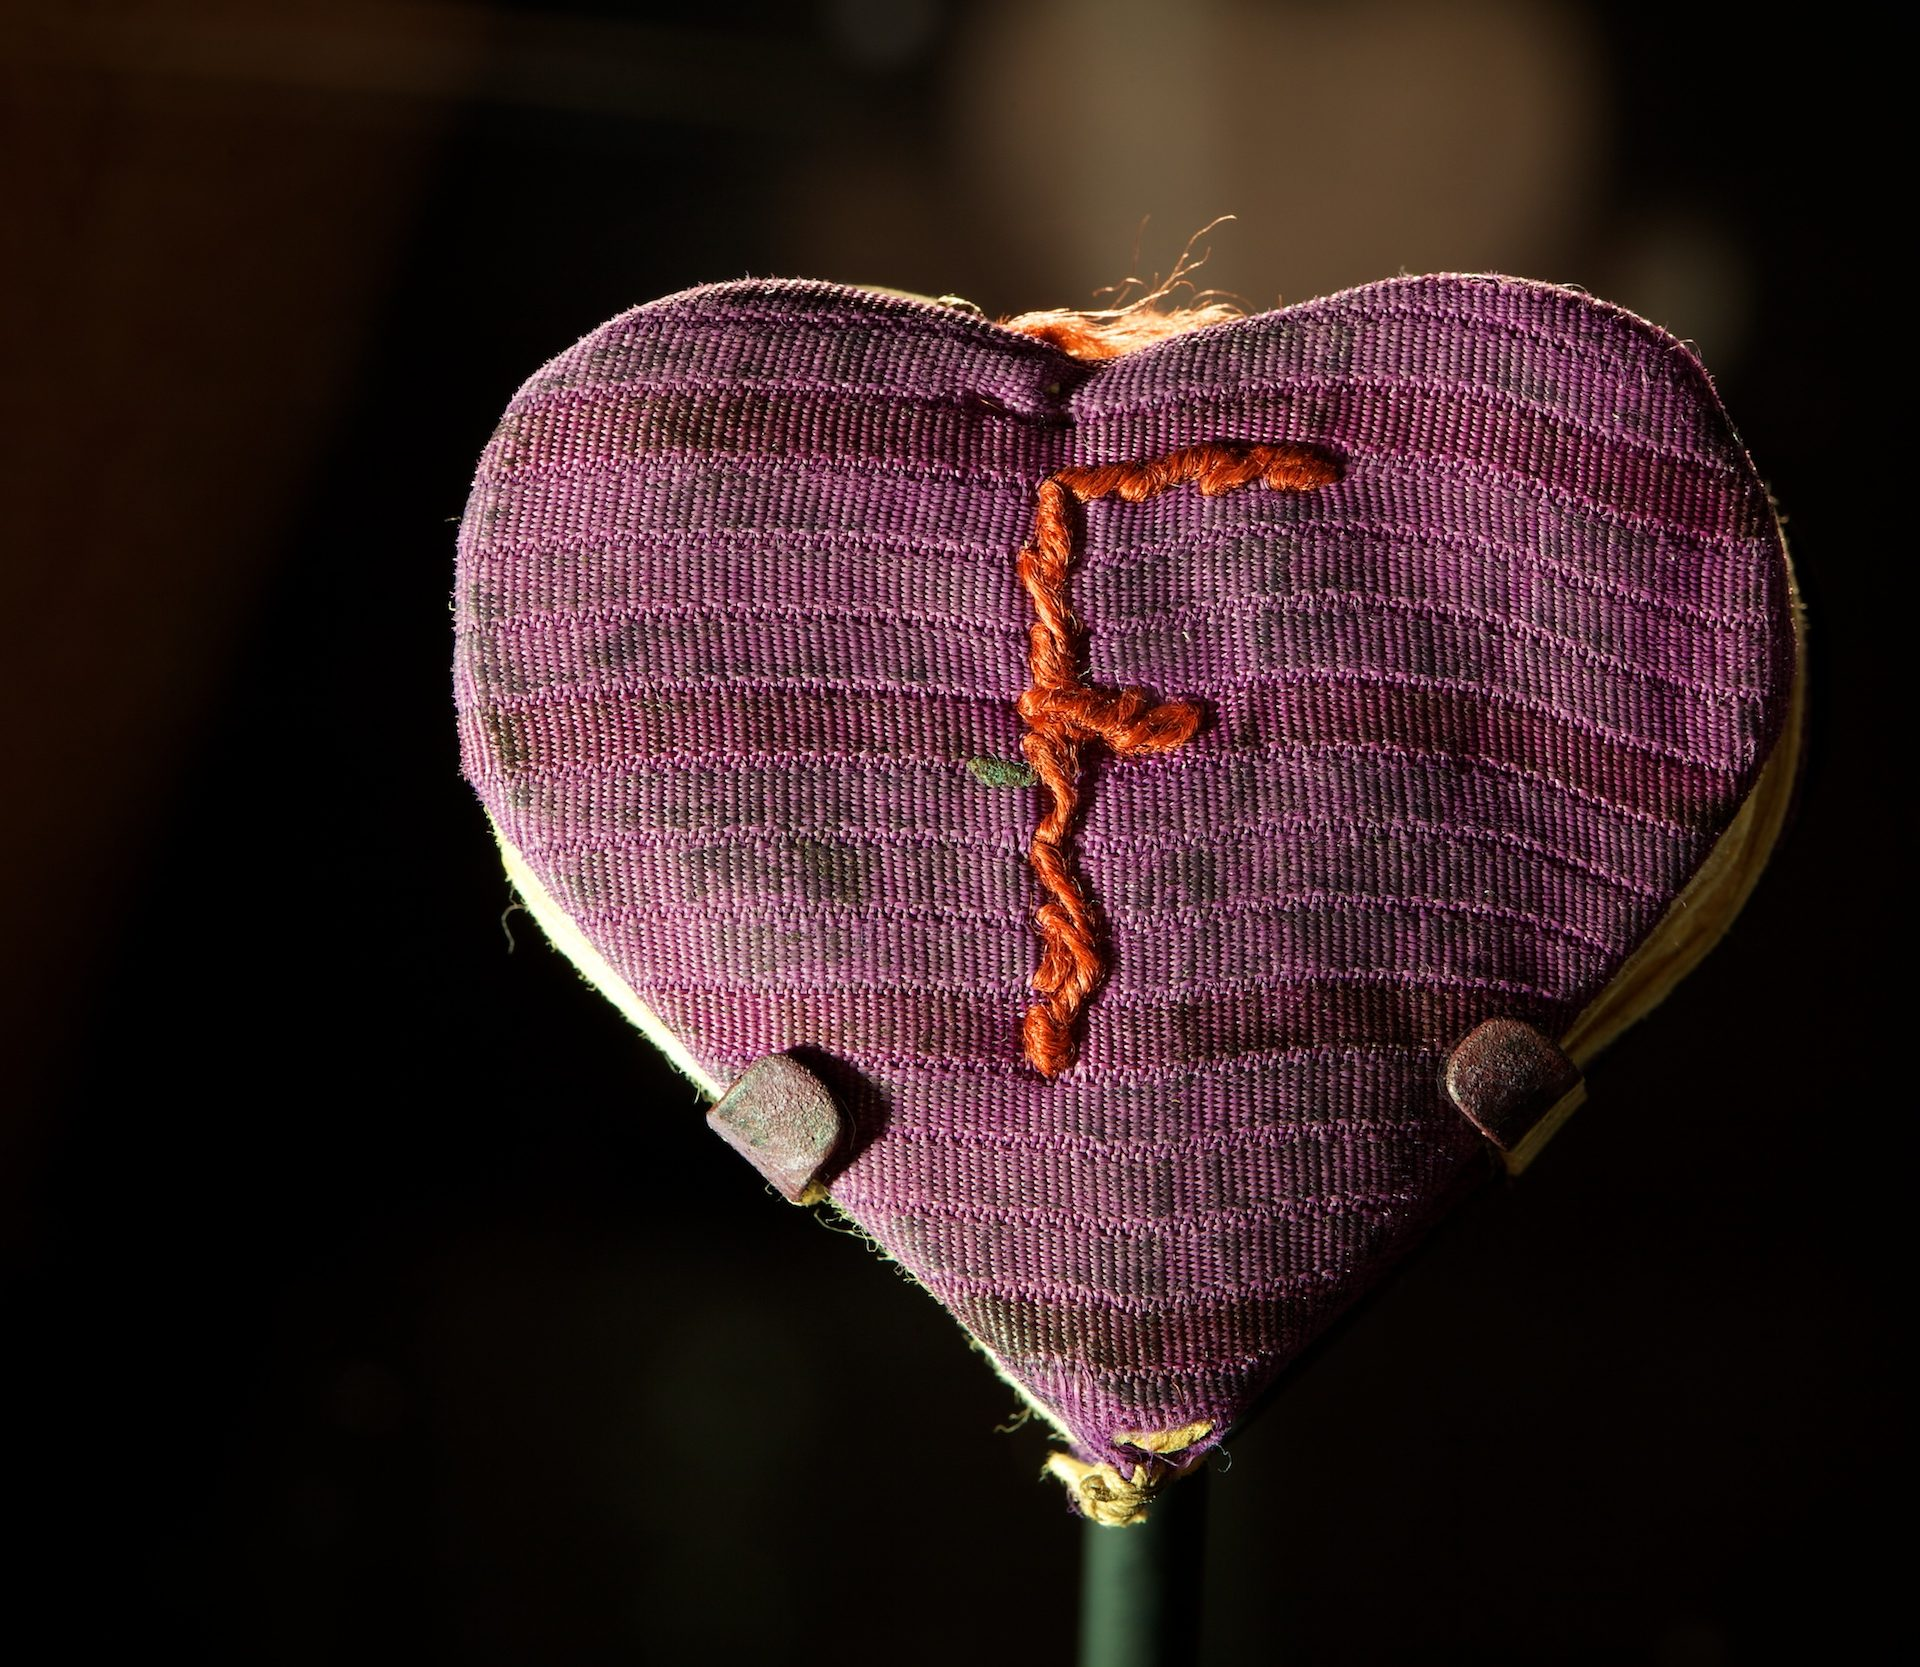 This heart-shaped booklet is a birthday card given to Fania Fainer on December 12, 1944, when she turned 20-years-old in Auschwitz. © Montreal Holocaust Museum